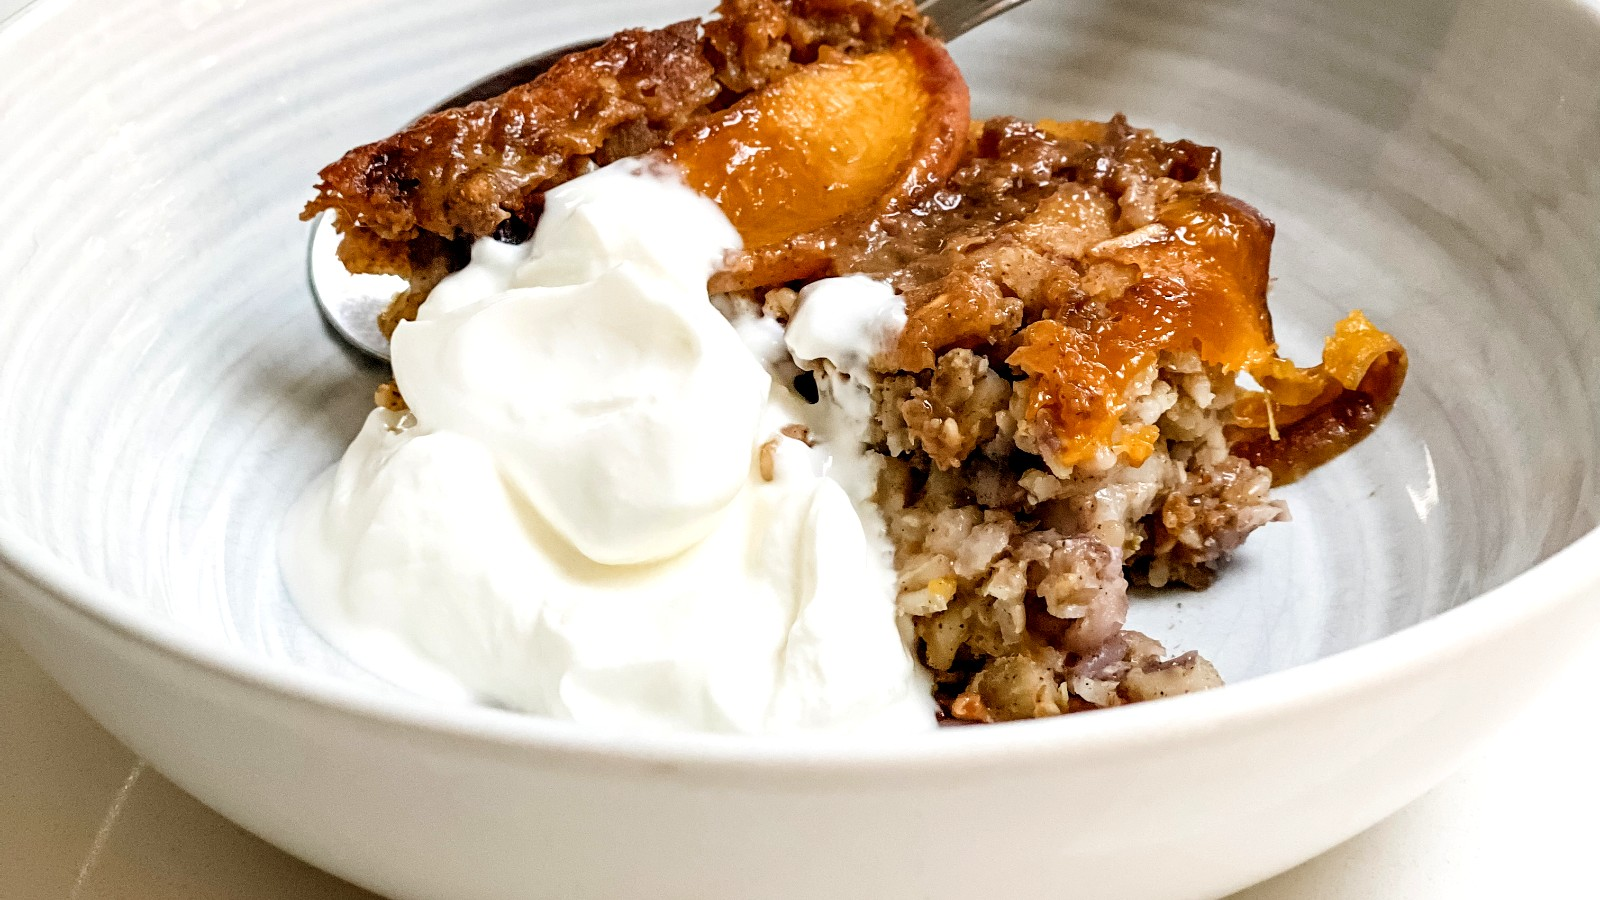 Image of Baked Oatmeal with Ontario Peaches